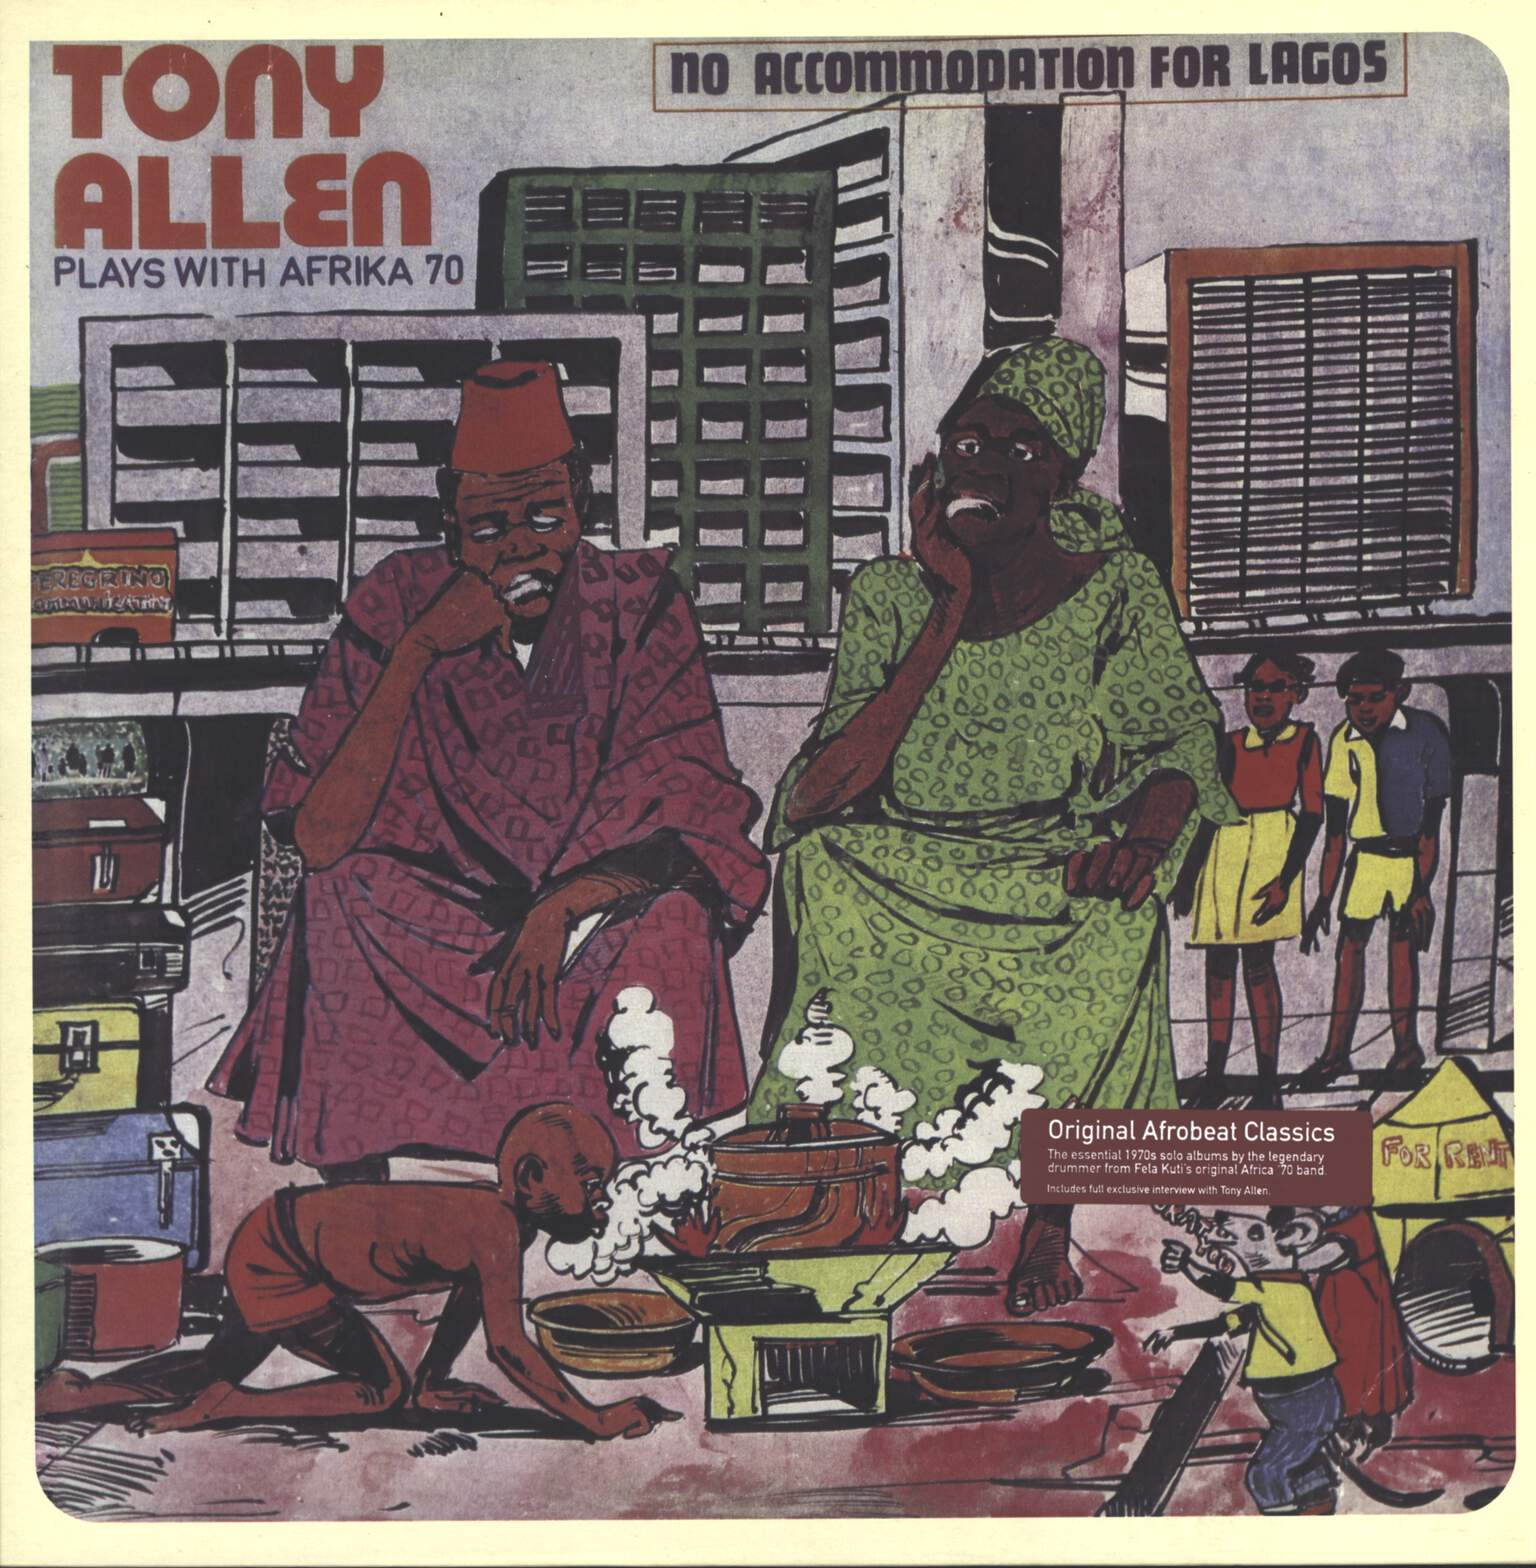 Tony Allen: No Accommodation For Lagos, LP (Vinyl)